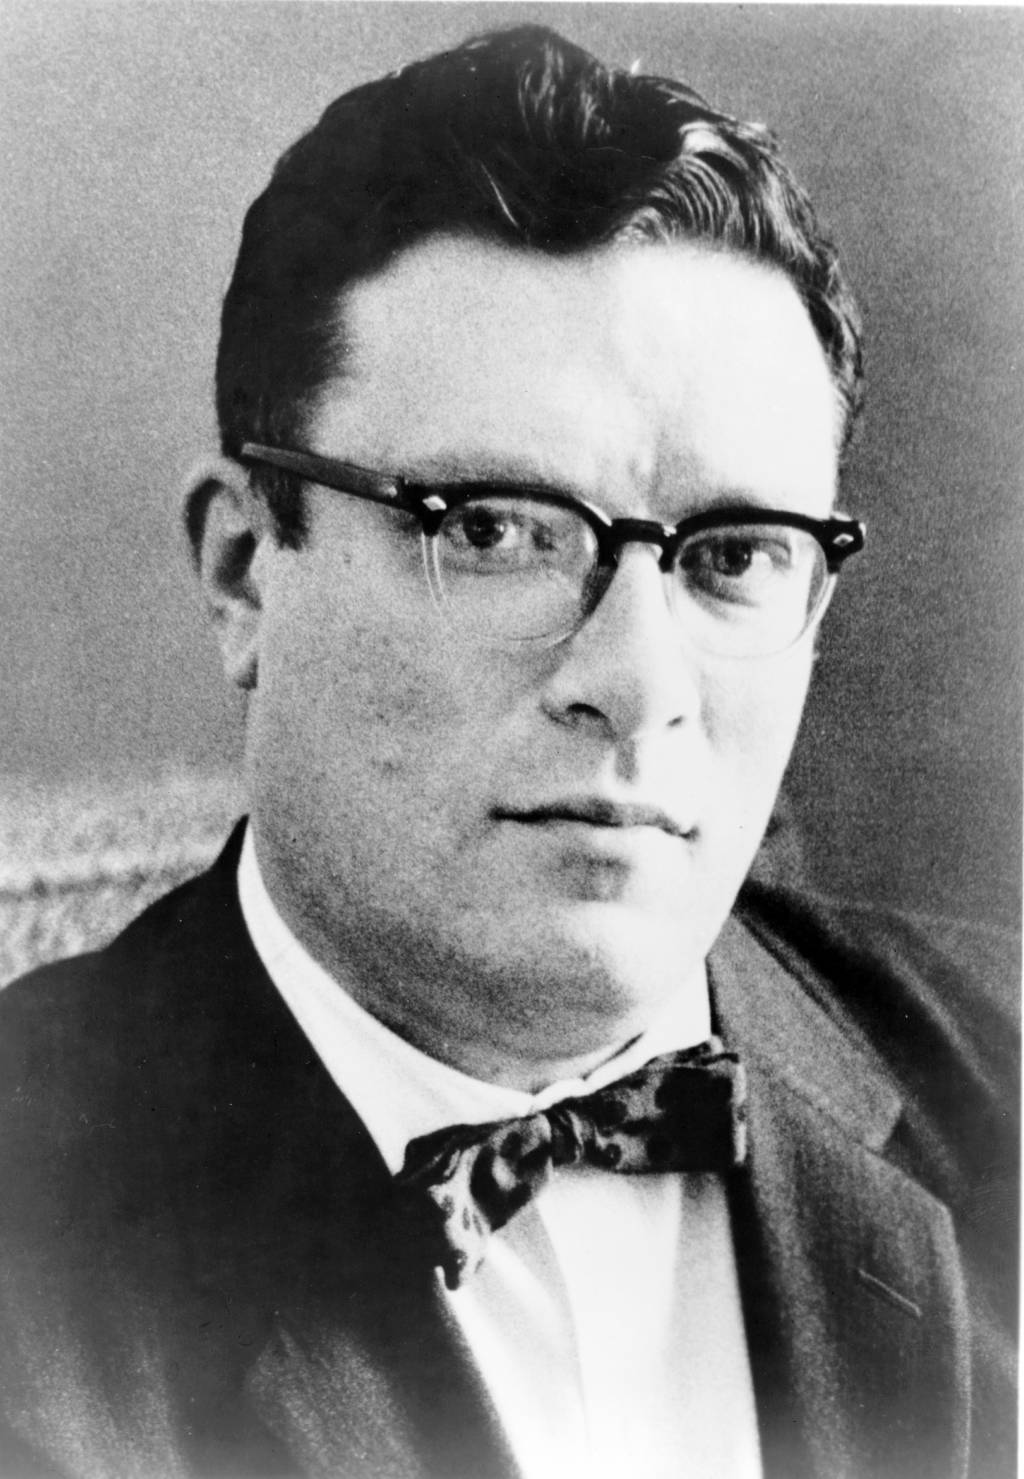 what is intelligence anyway isaac asimov Here's an interesting article on intelligence by isaac asimov: what is intelligence, anyway when i was in the army, i received the kind of aptitude test that all soldiers took and, against a normal of 100, scored 160.